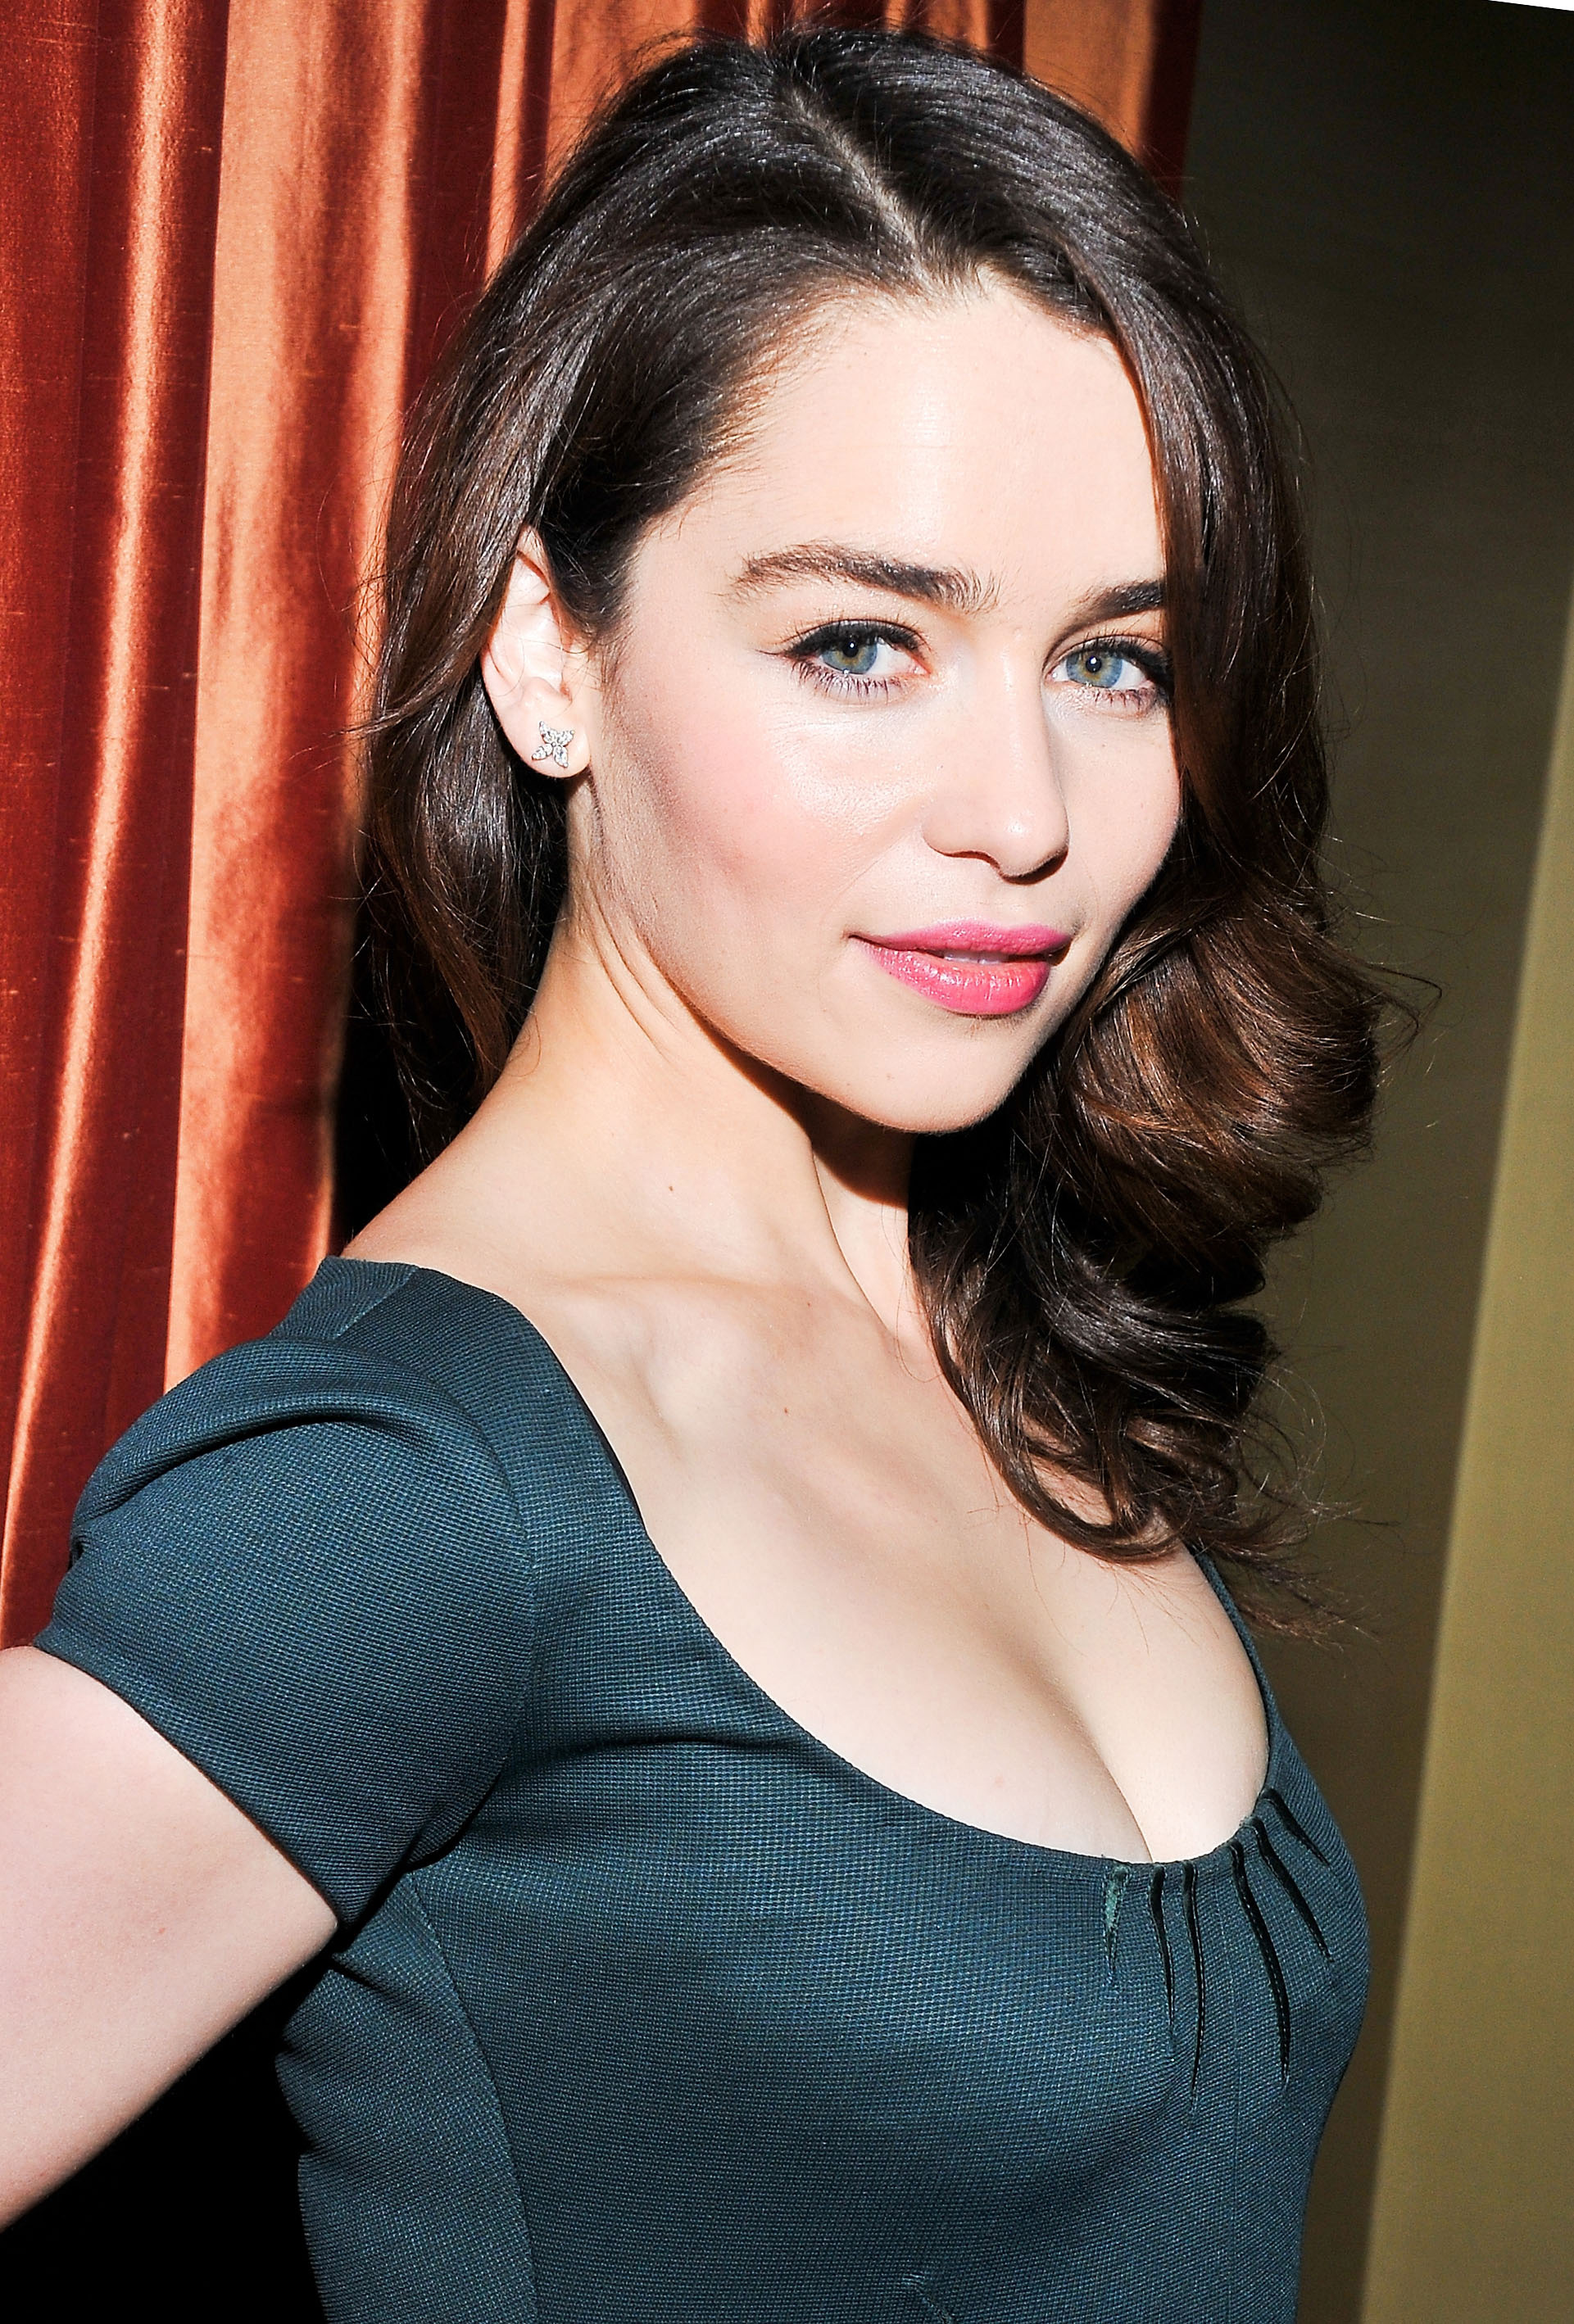 With her naturally brunet hair, Emilia Clarke looks ...